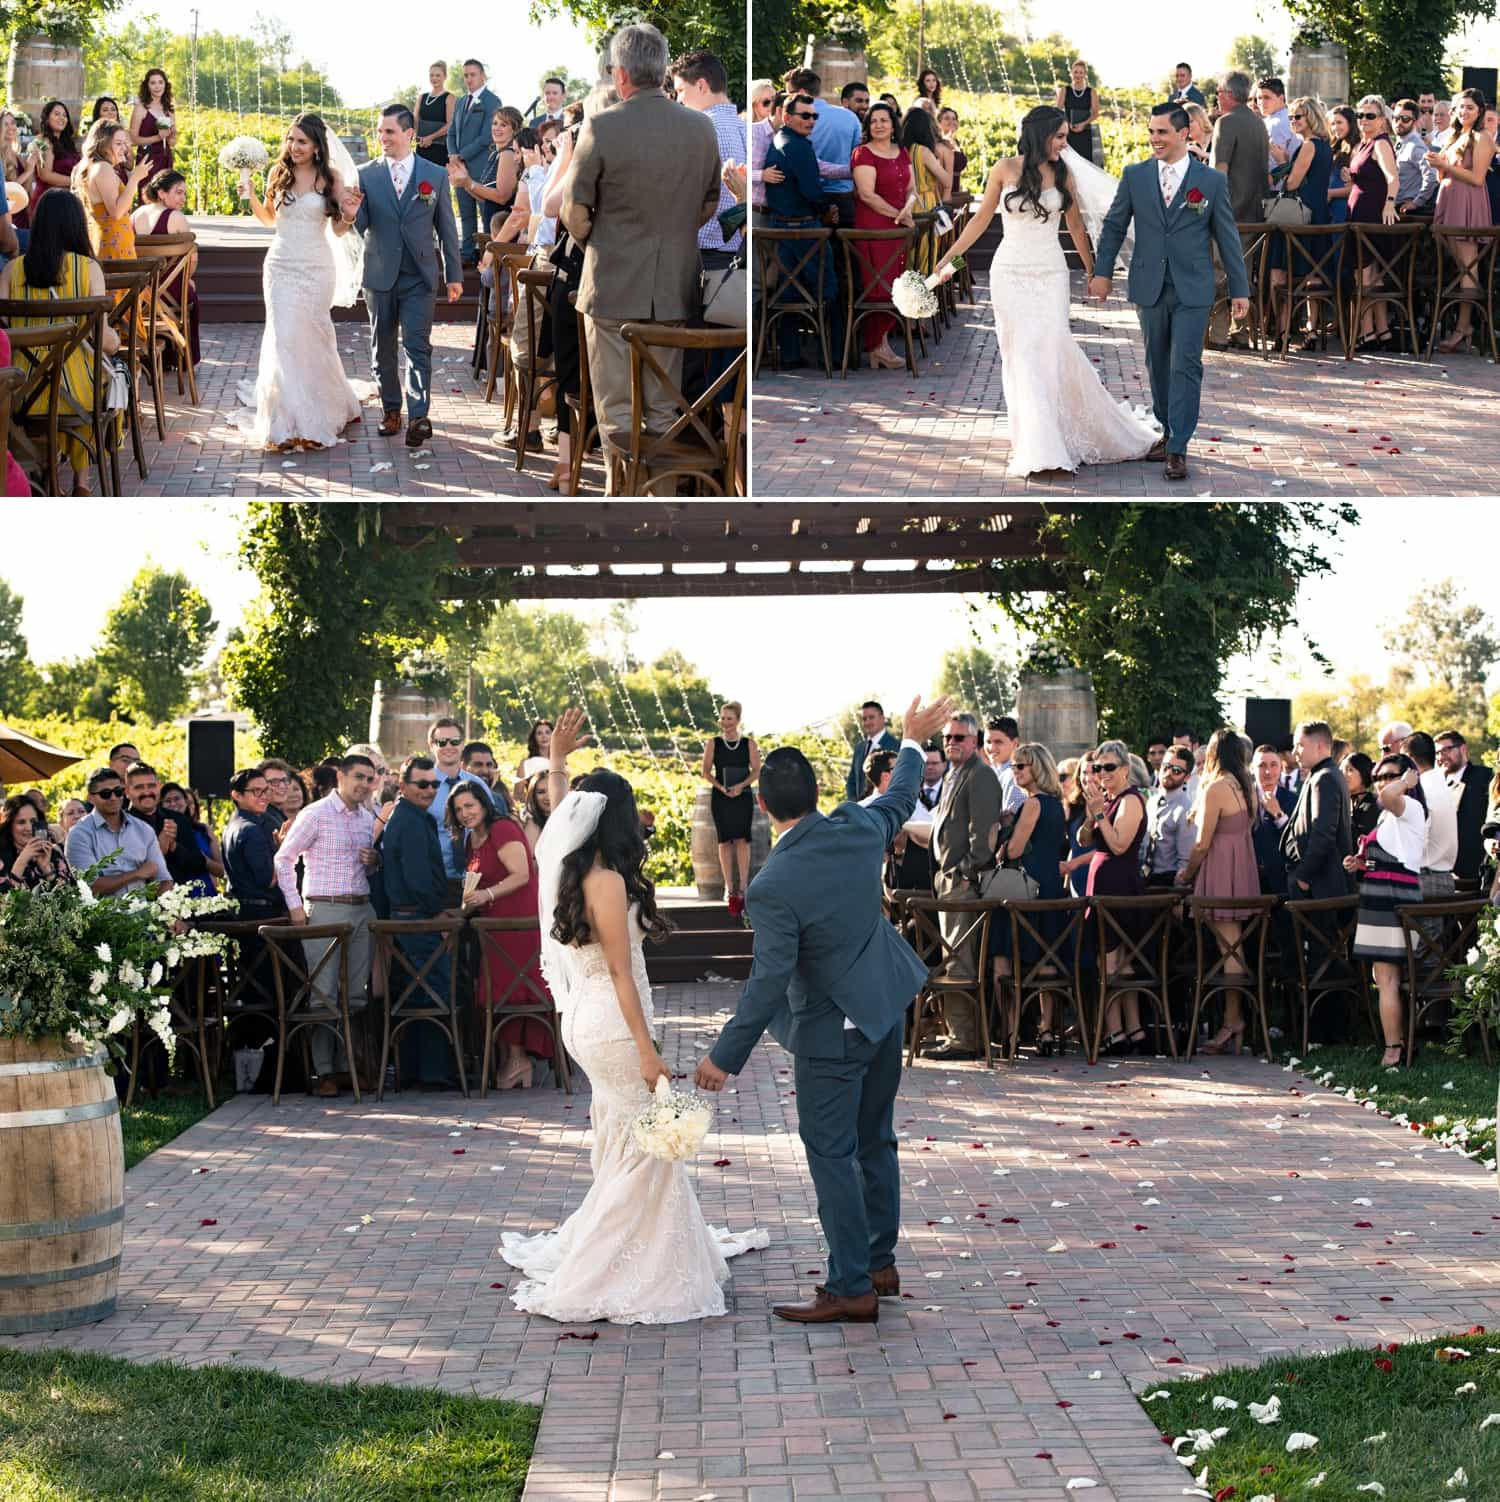 Bride and groom exiting their wedding ceremony at a winery in Temecula.